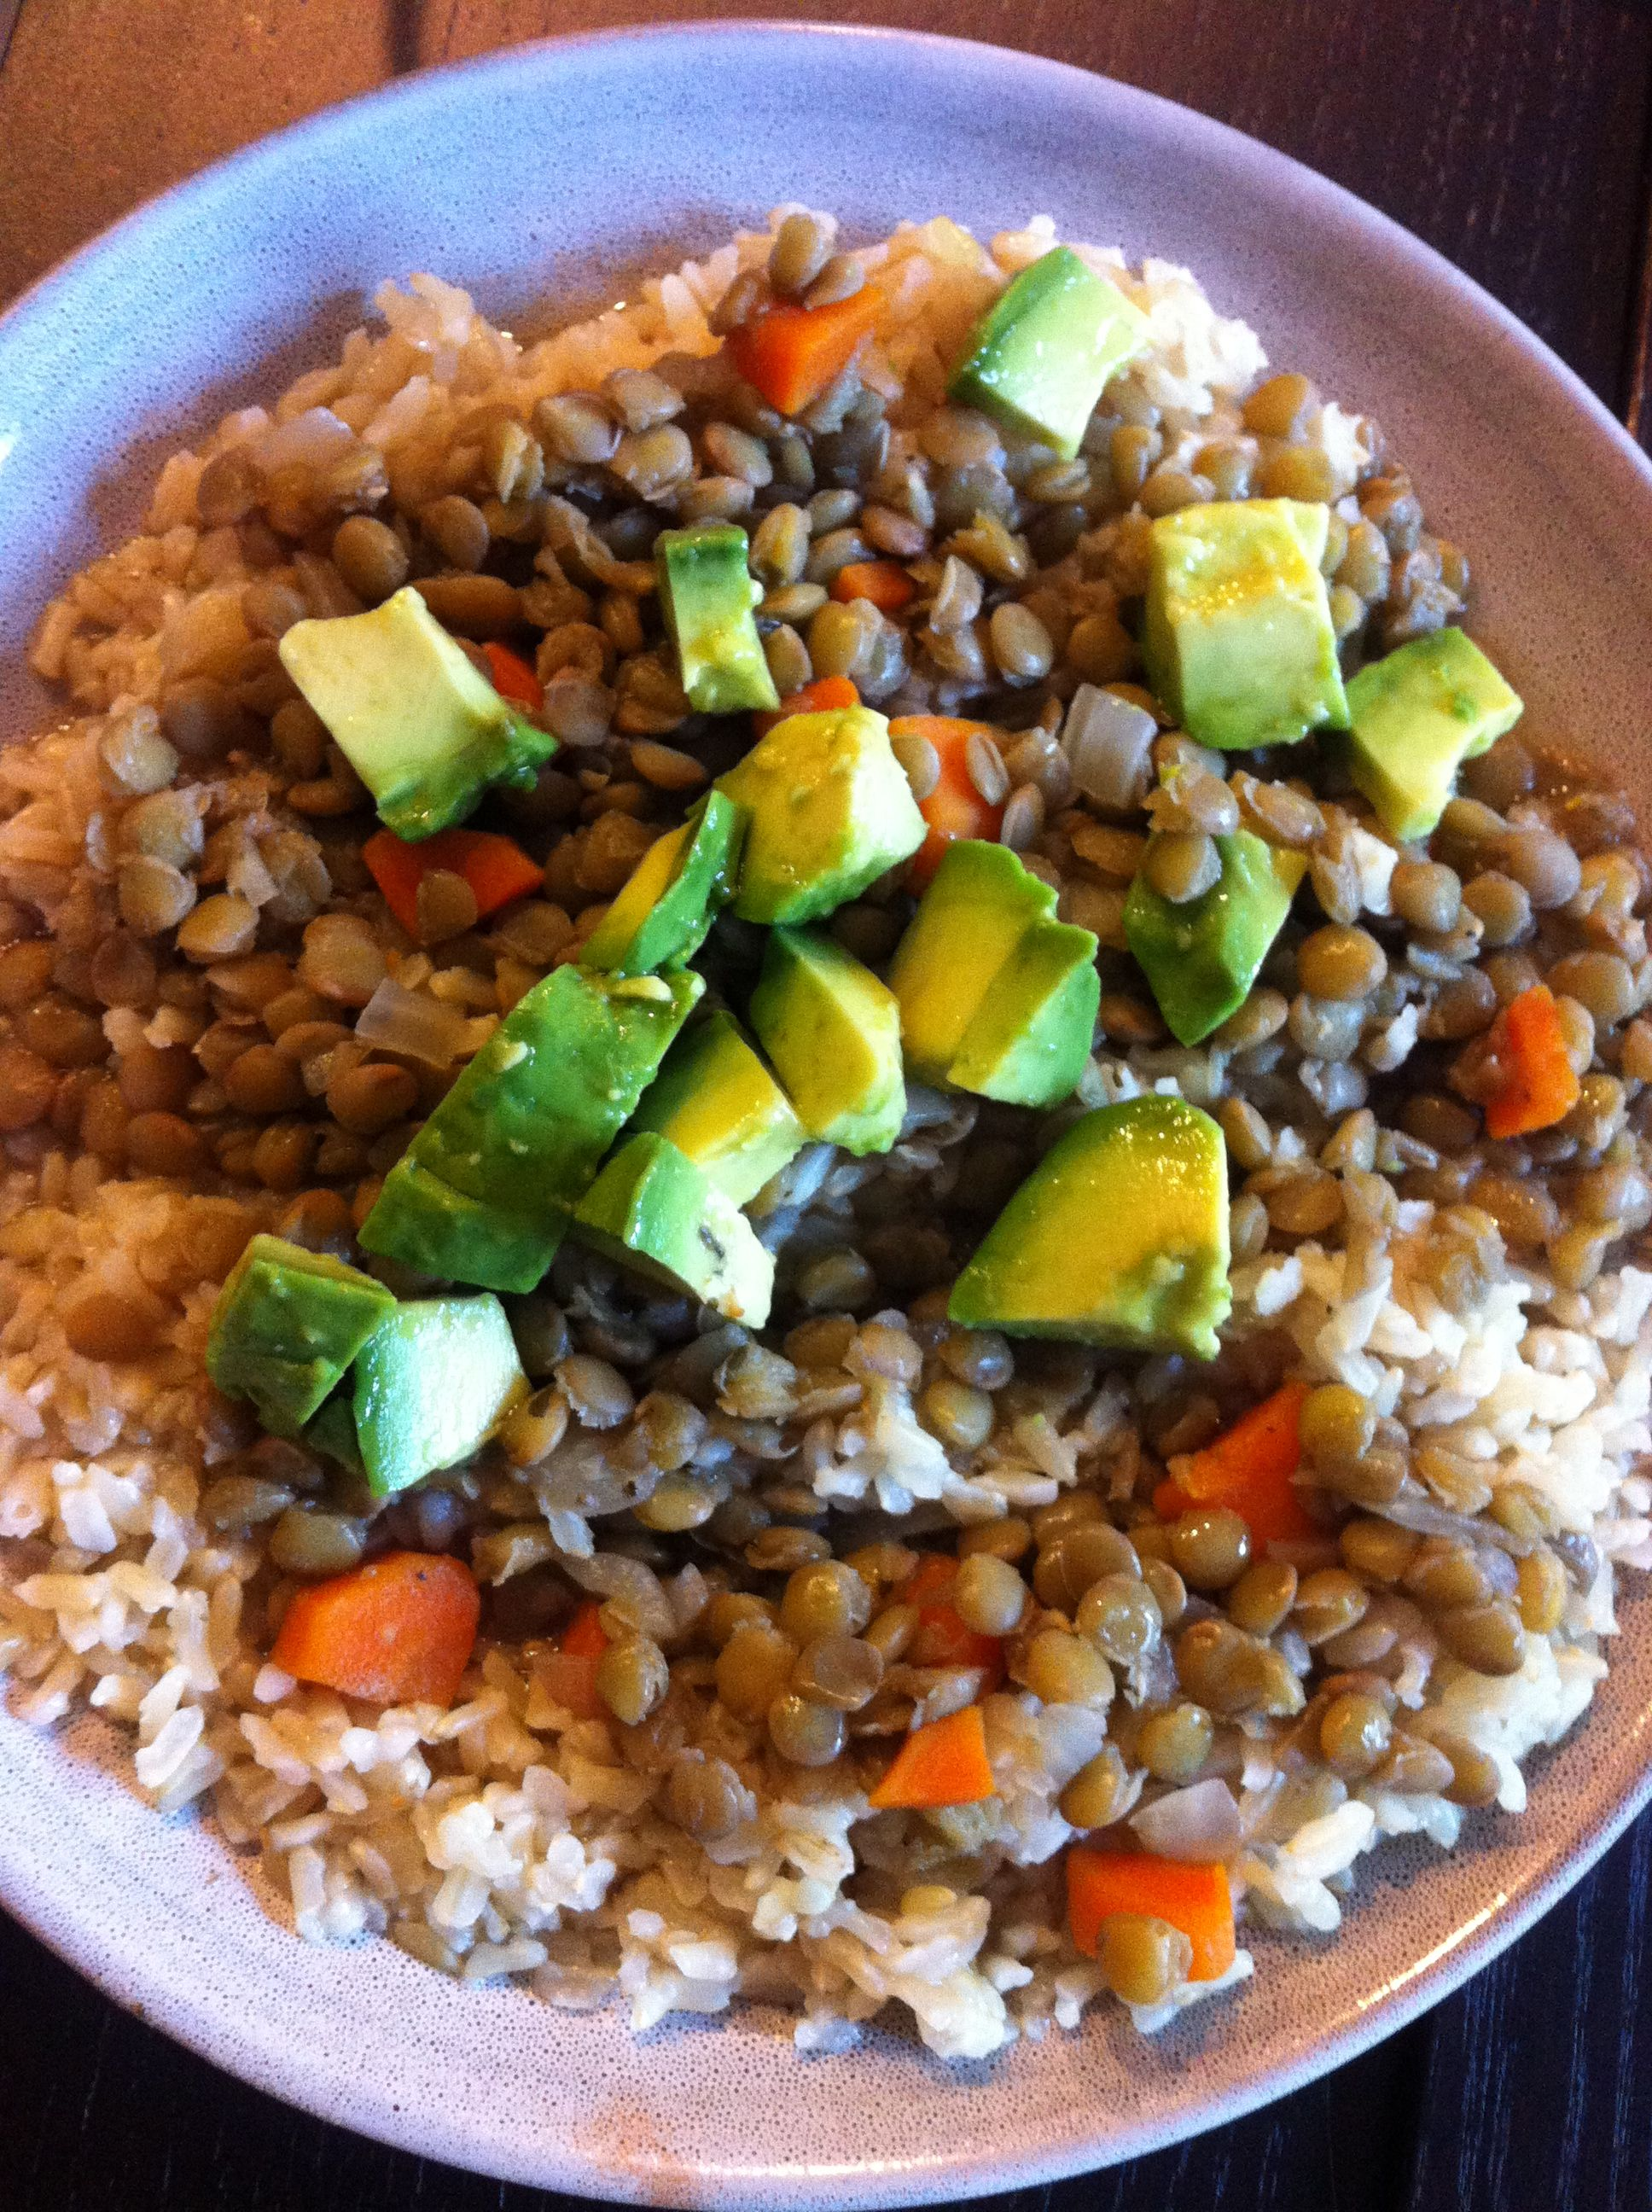 Lentils with brown rice and avocado (I add avocado pretty much to everything!).